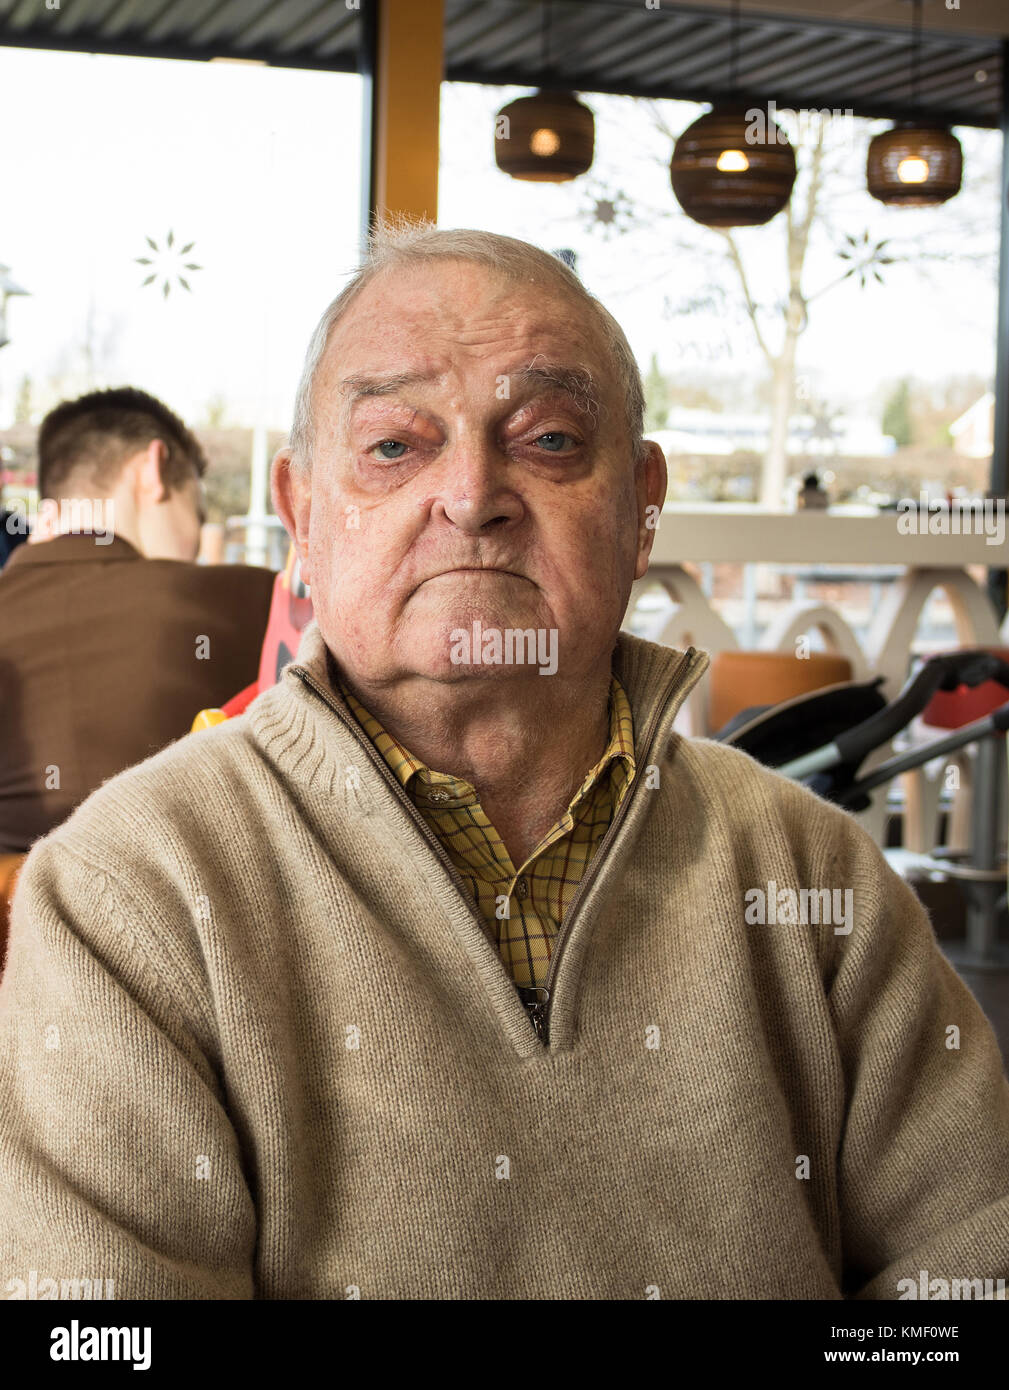 A sad,tired, and confused old English man. - Stock Image